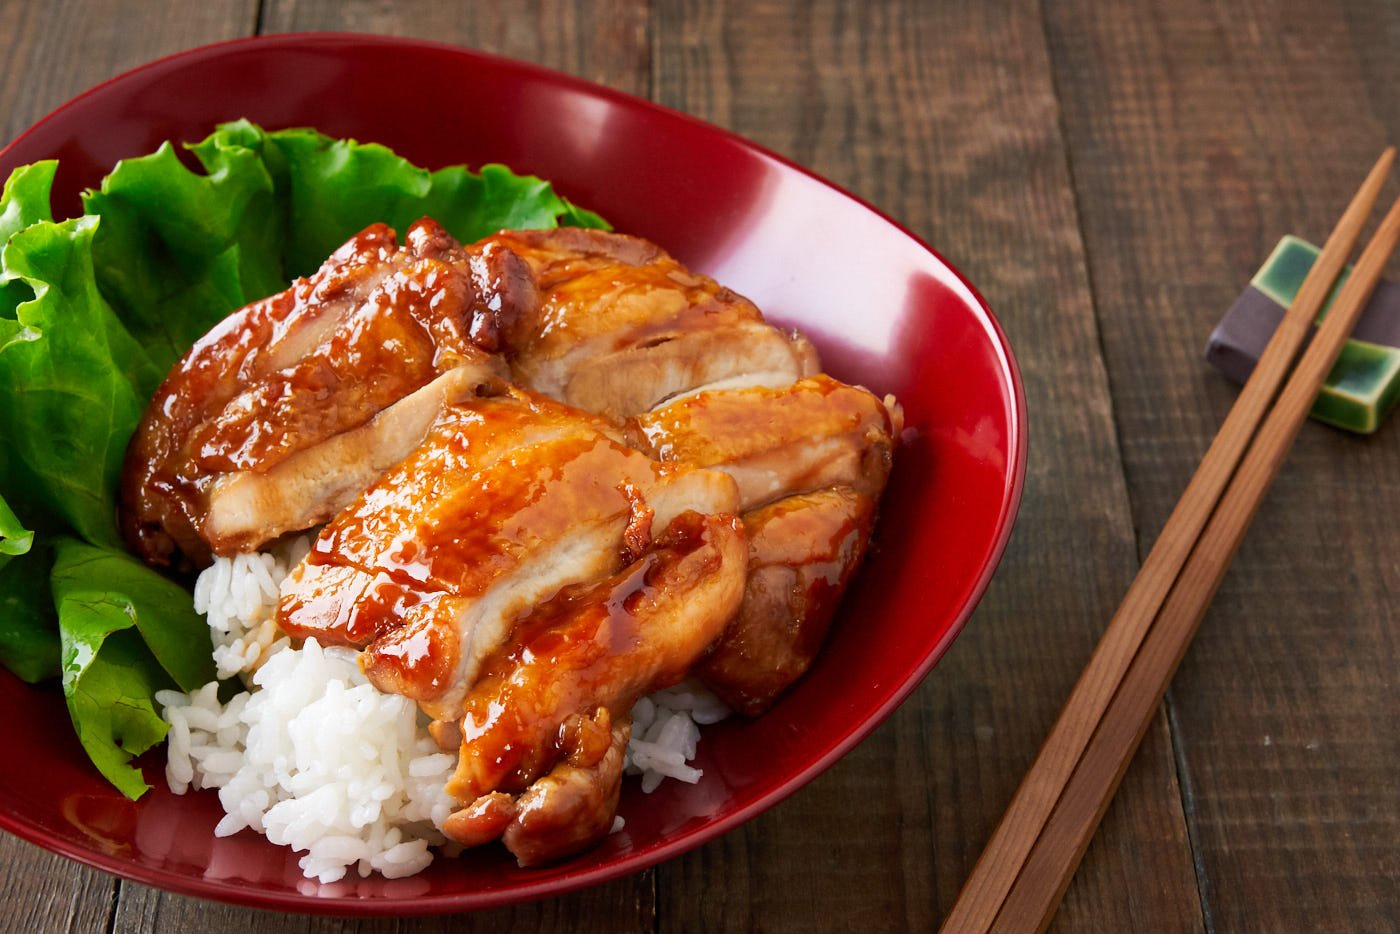 A glossy mirrorlike shine is the hallmark of any great Japanese chicken teriyaki, and this one comes together from just 4 simple ingredients.